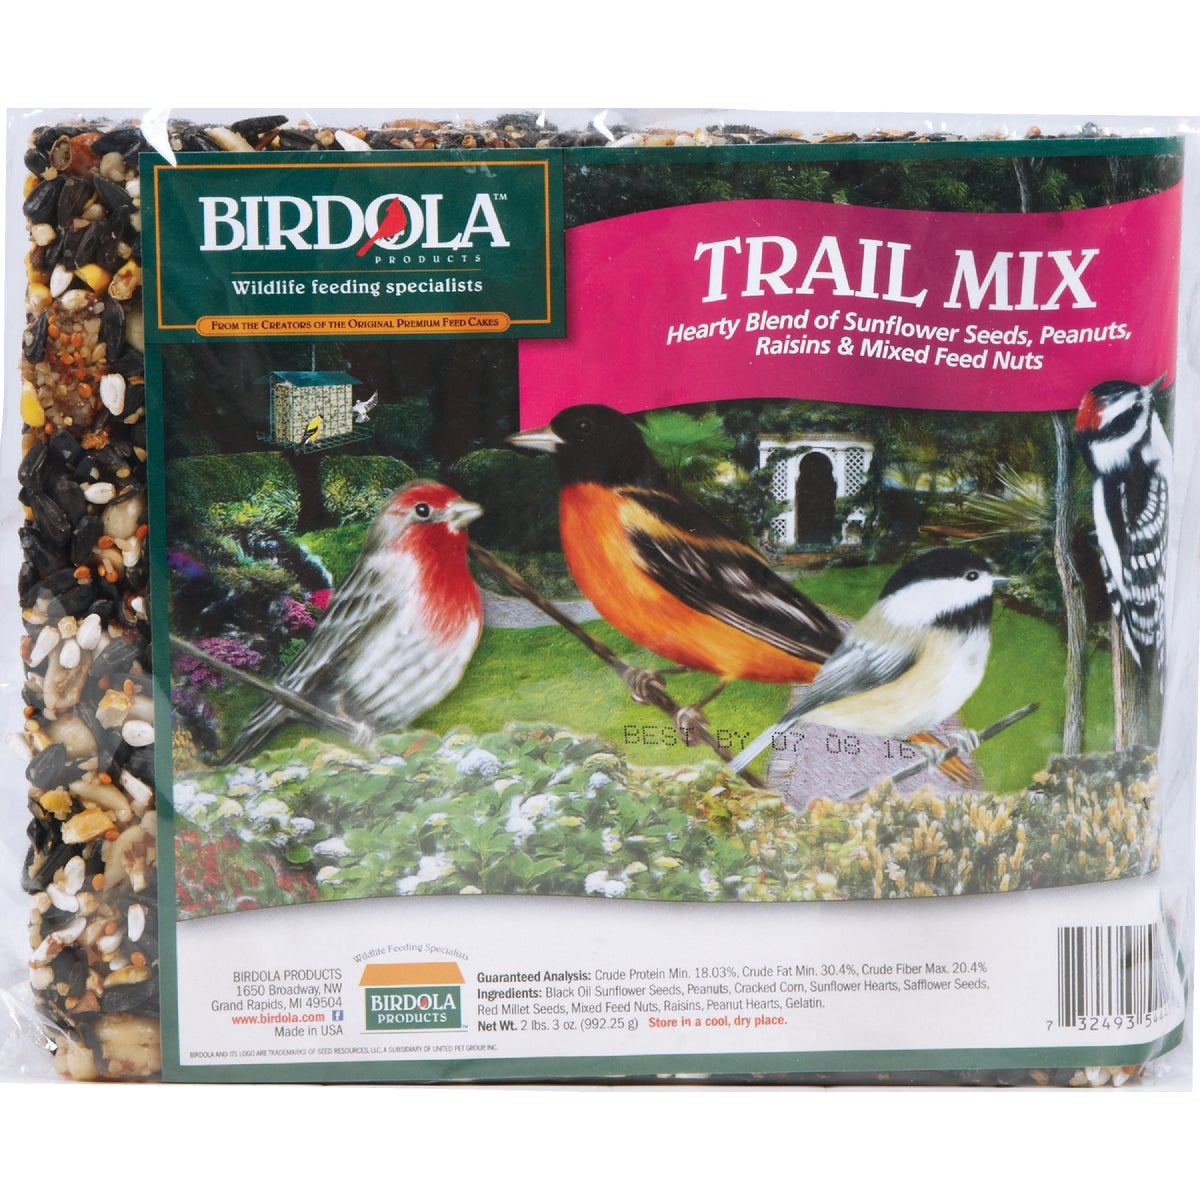 TRAIL MIX SNACK CAKE